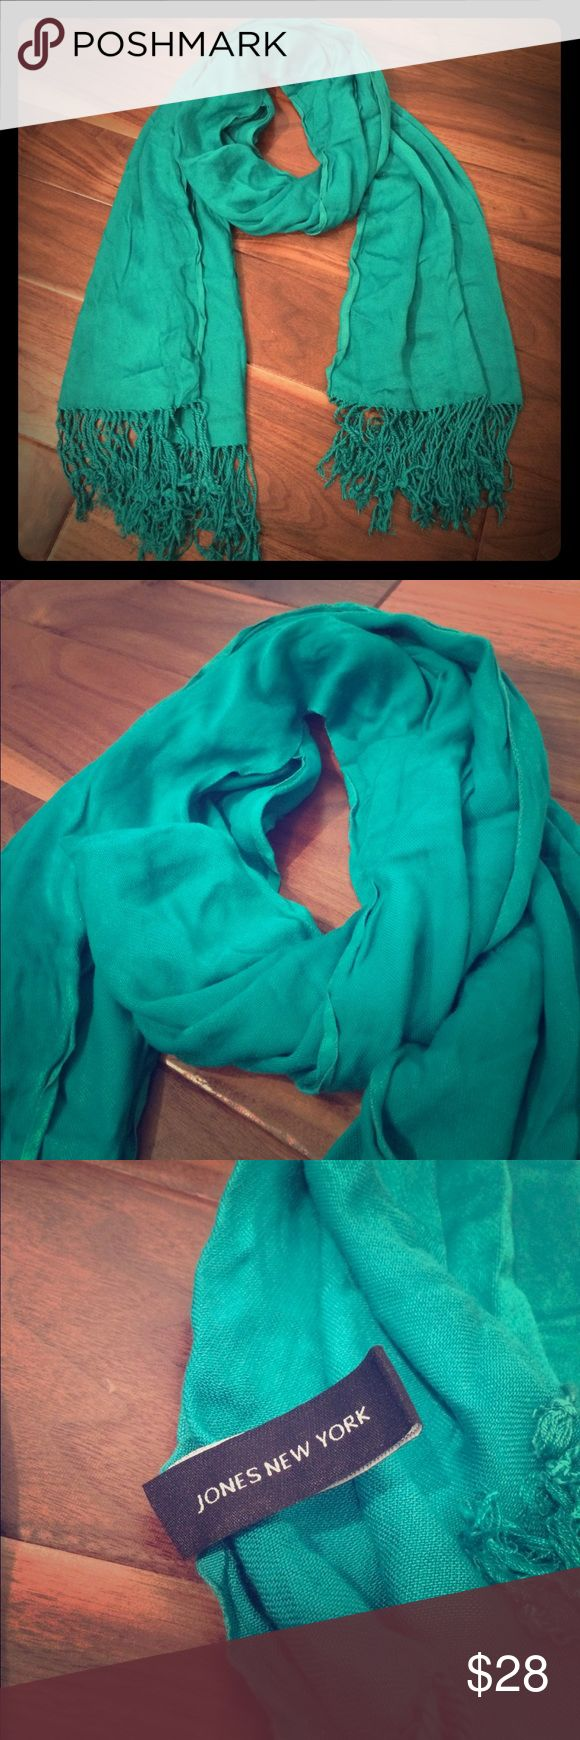 Jones New York scarf Teal scarf with fringe. Super soft. Perfect for fall. No signs of wear. feel free to ask questions. Jones New York Accessories Scarves & Wraps